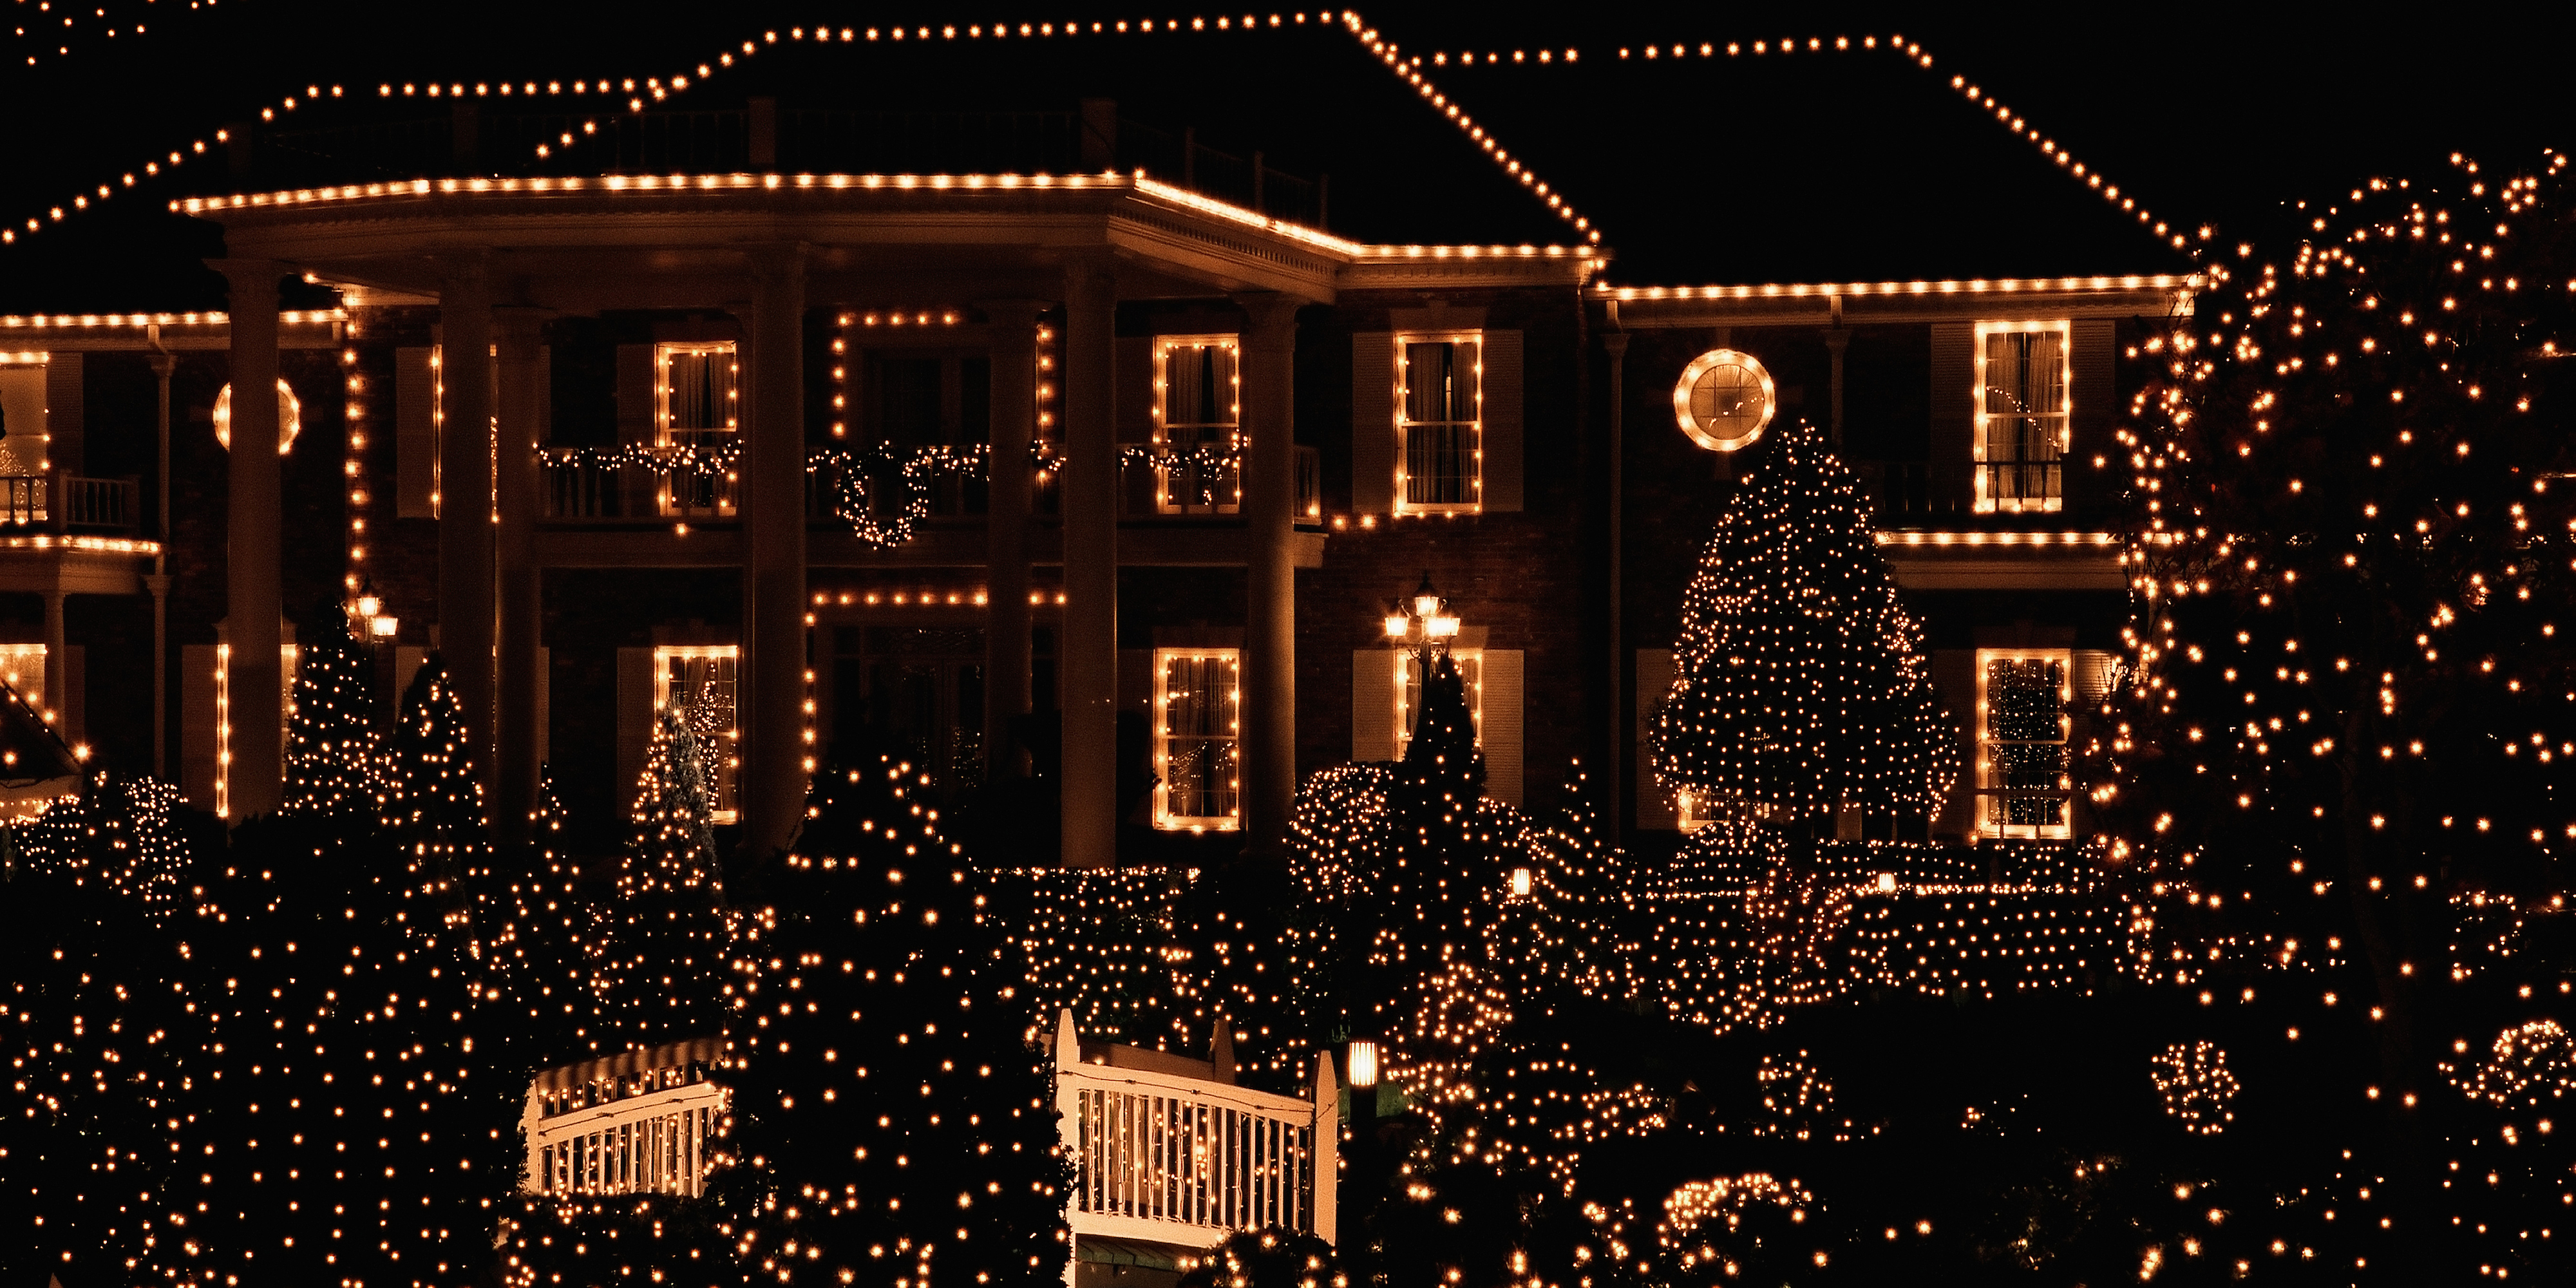 Lighting In Houses 17 Outdoor Christmas Light Decoration Ideas Outside Lights Display Pictures Lighting In Houses